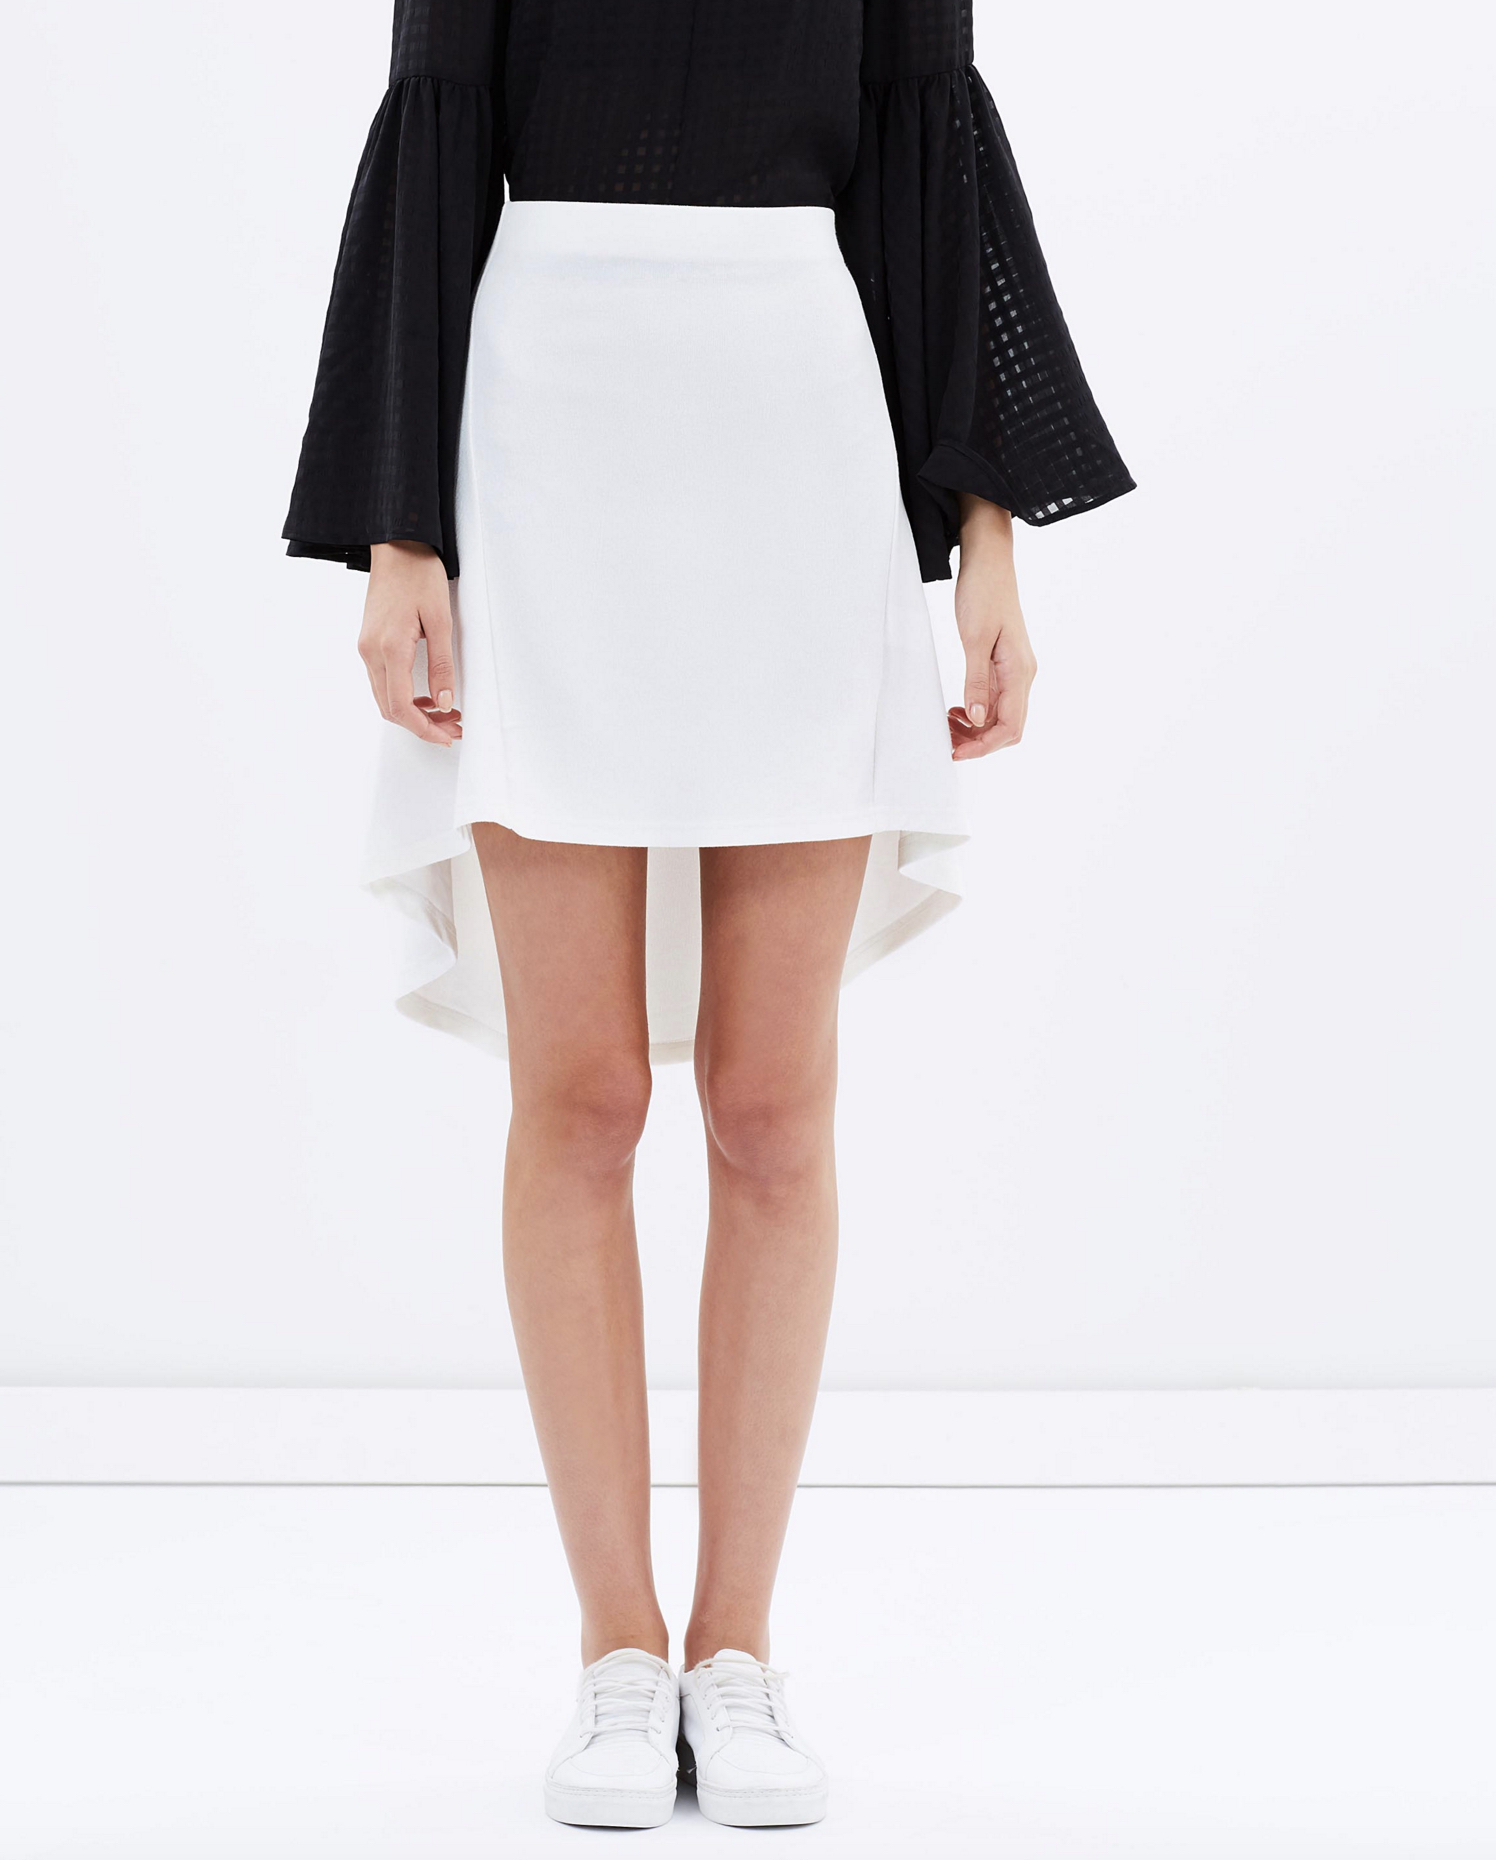 The Fifth Label repetition skirt $69.95